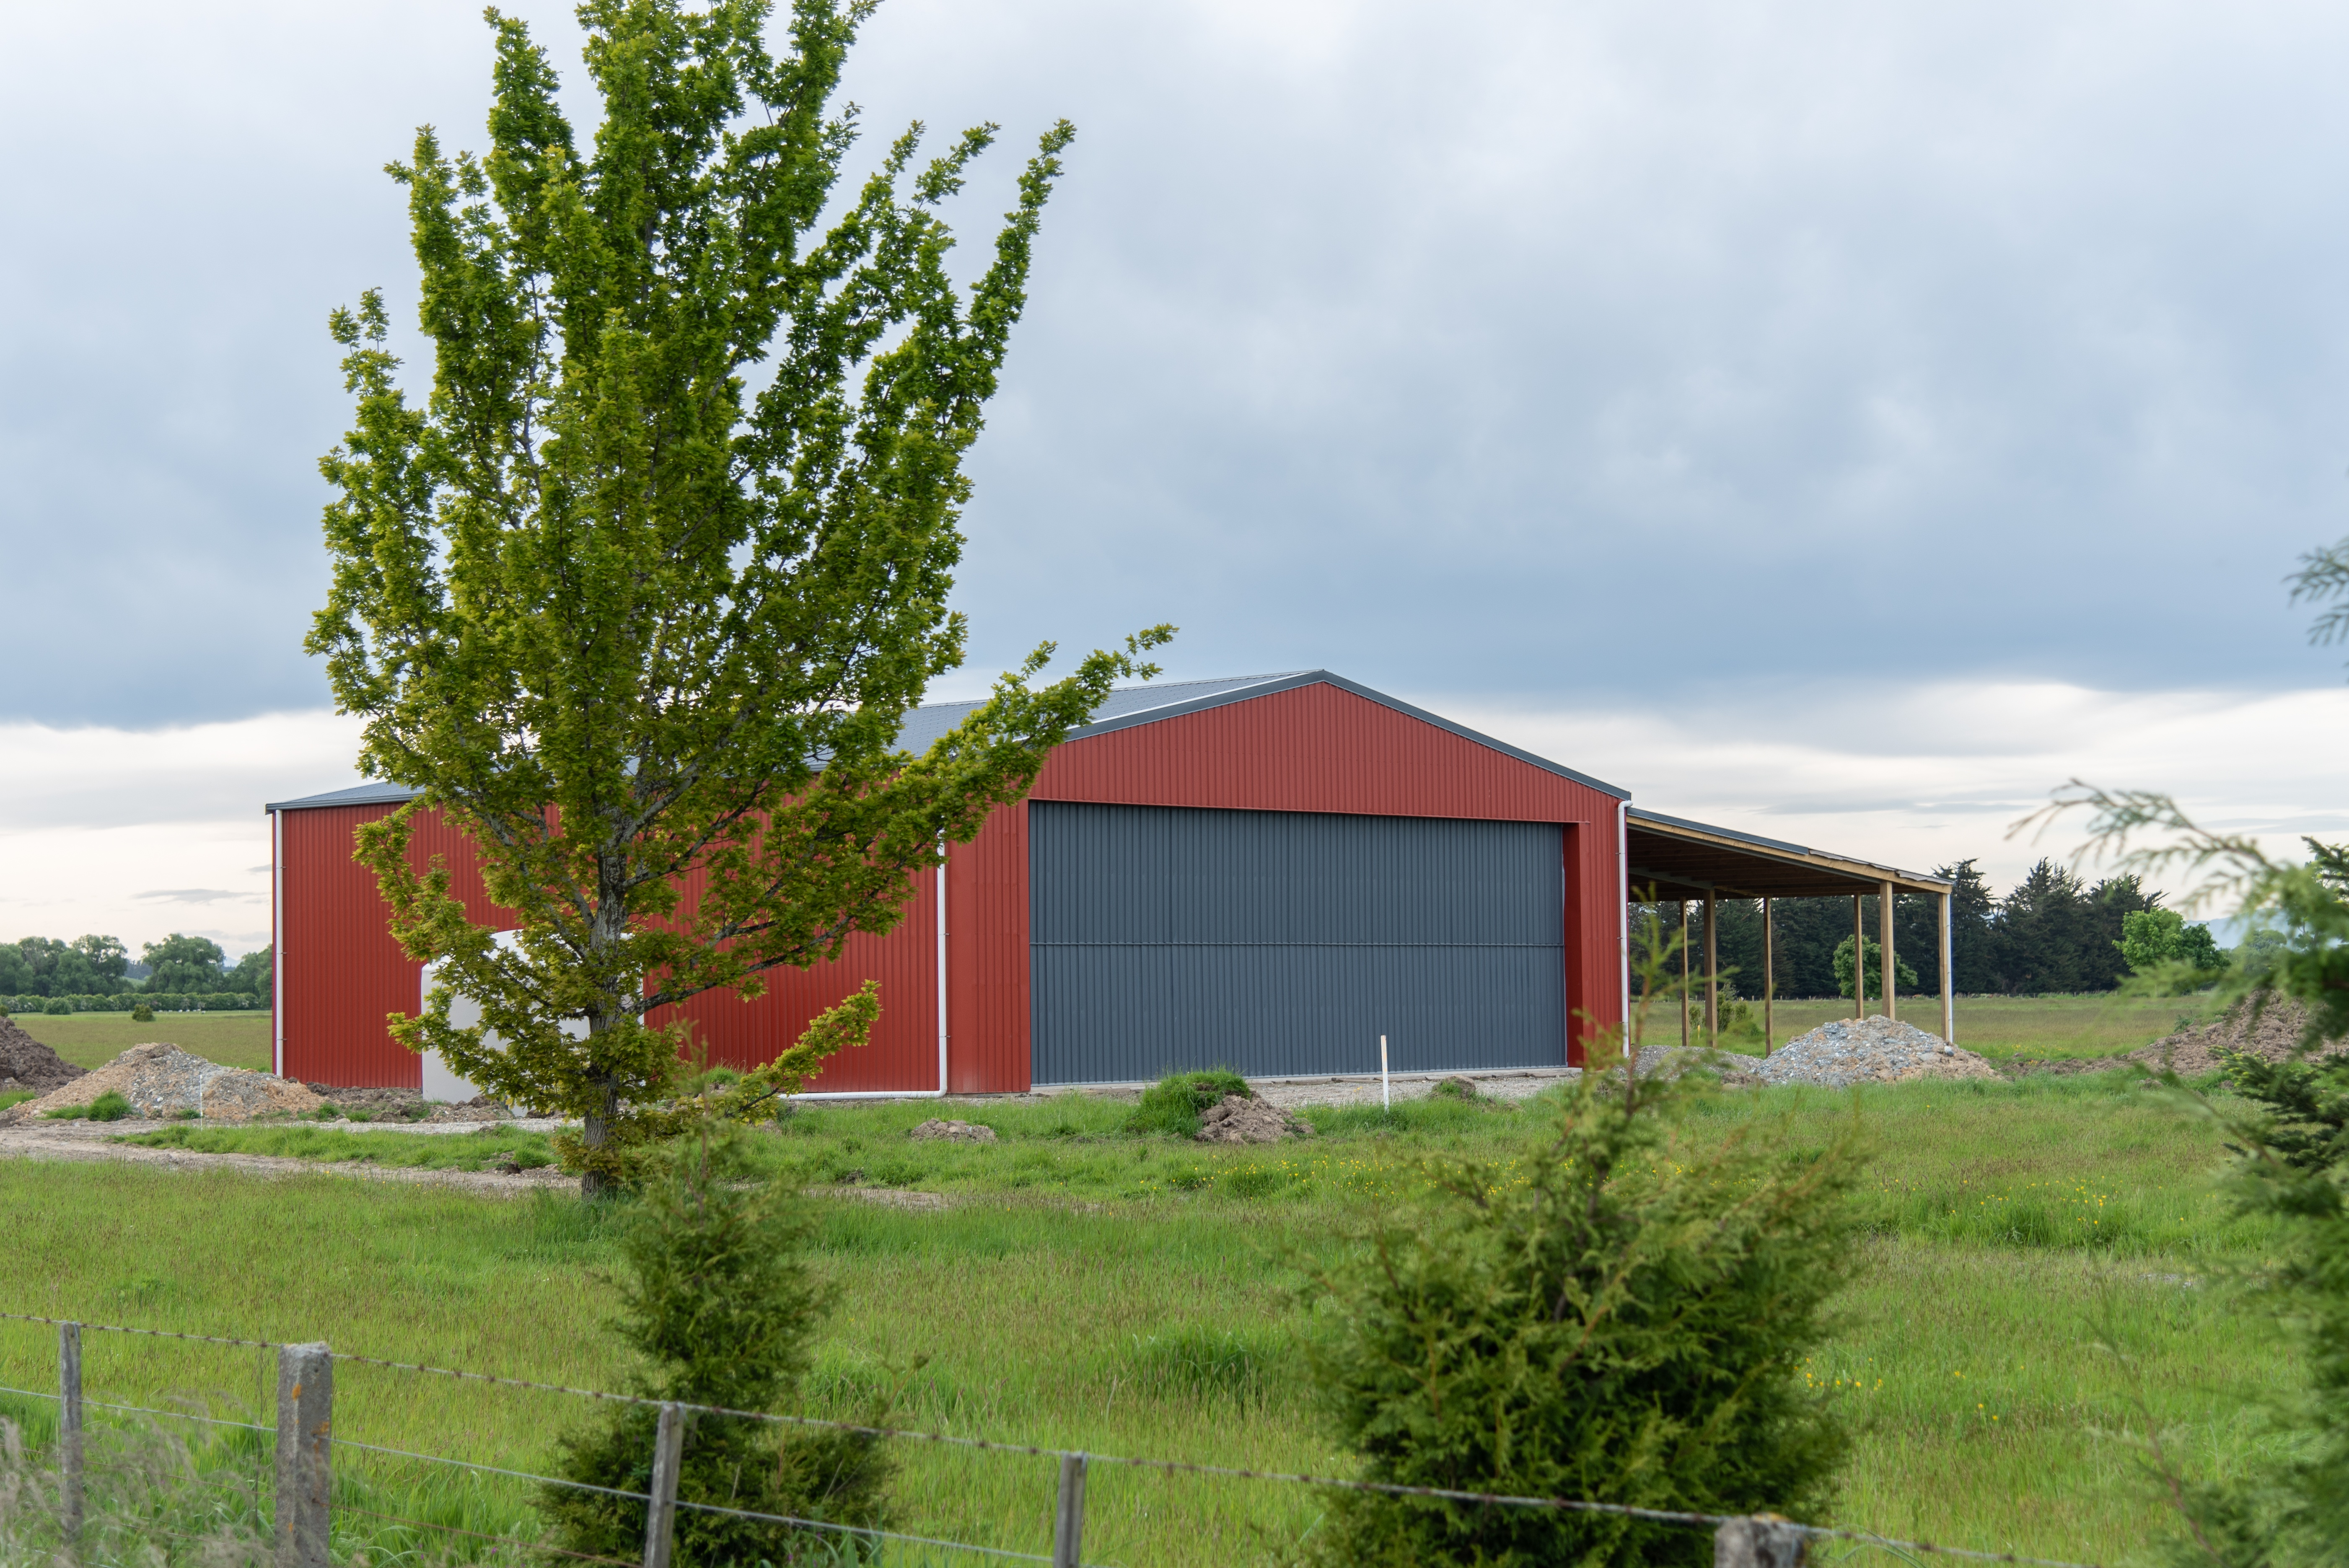 An Alpine Buildings Hangar shed